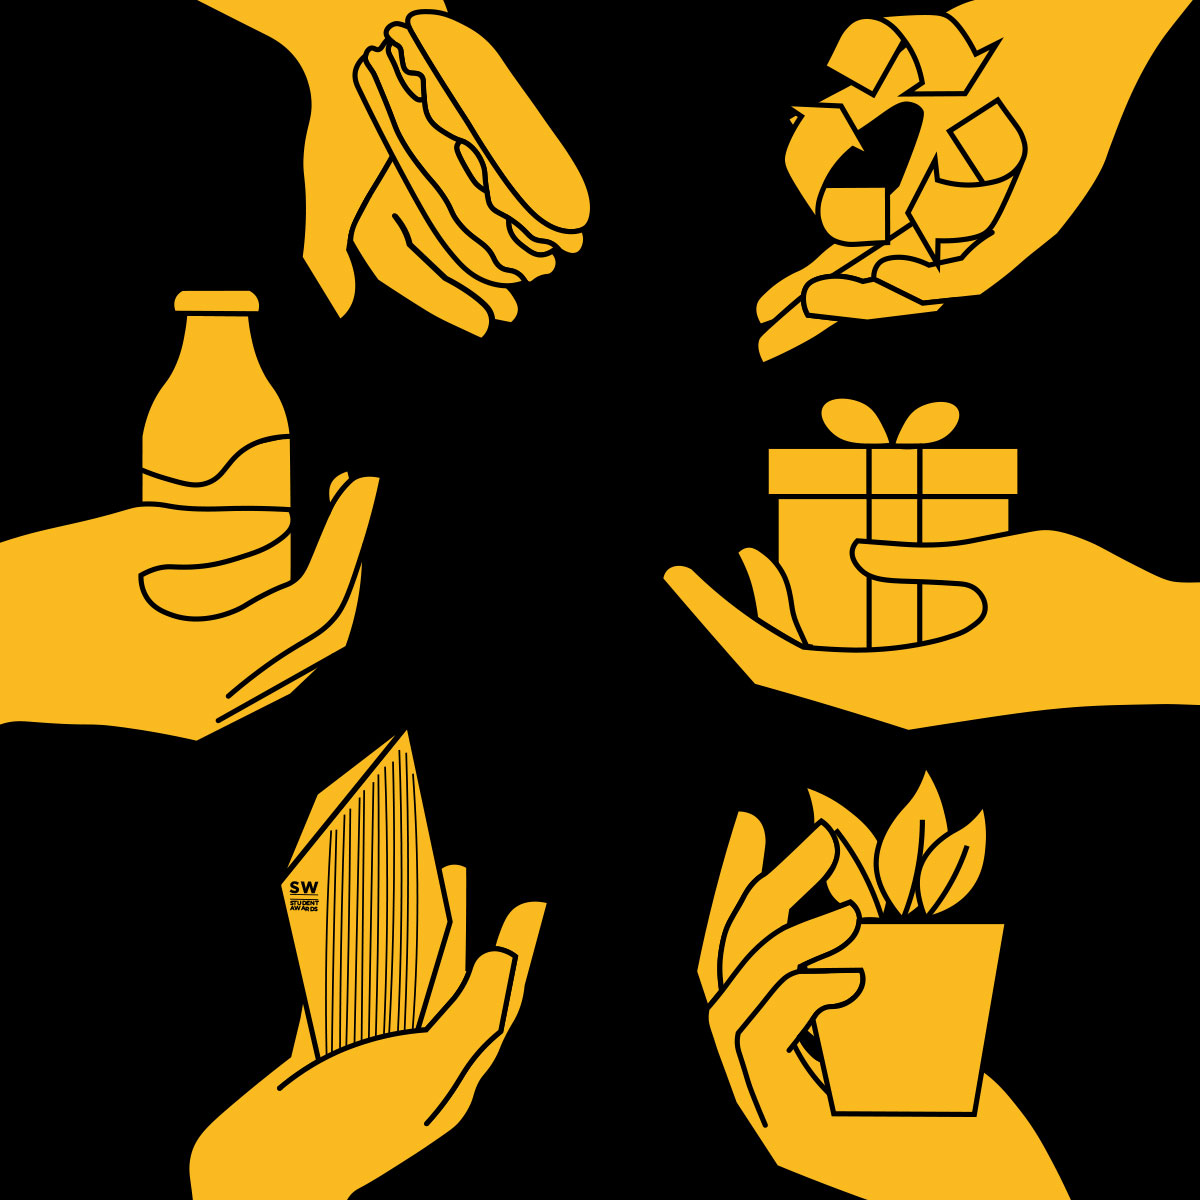 illustrated hands with different CSR activity symbols in each